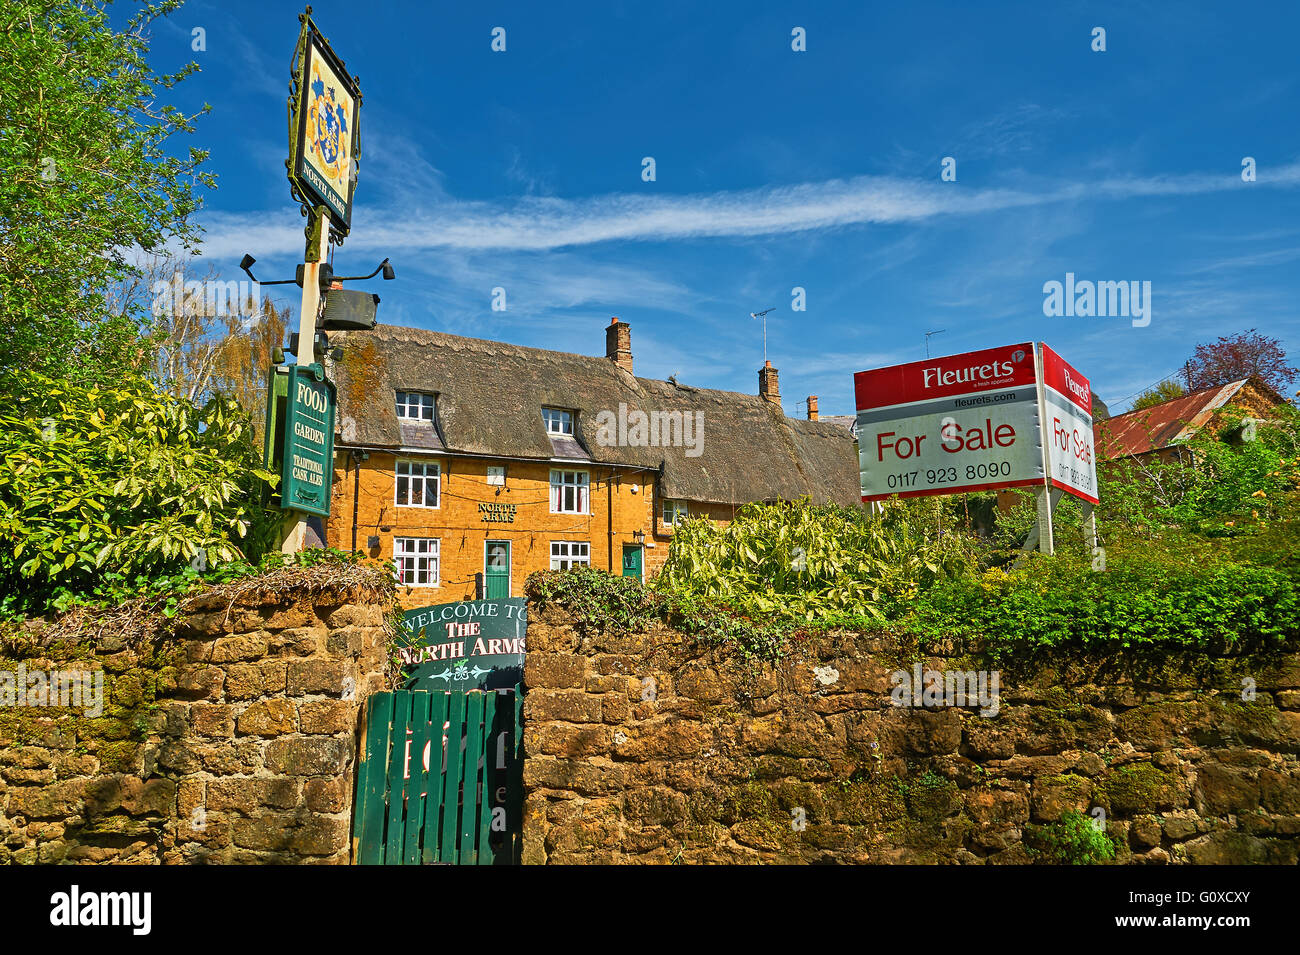 The North Arms pub in the centre of the Oxfordshire village of Wroxton like numerous other village pubs is closed. - Stock Image